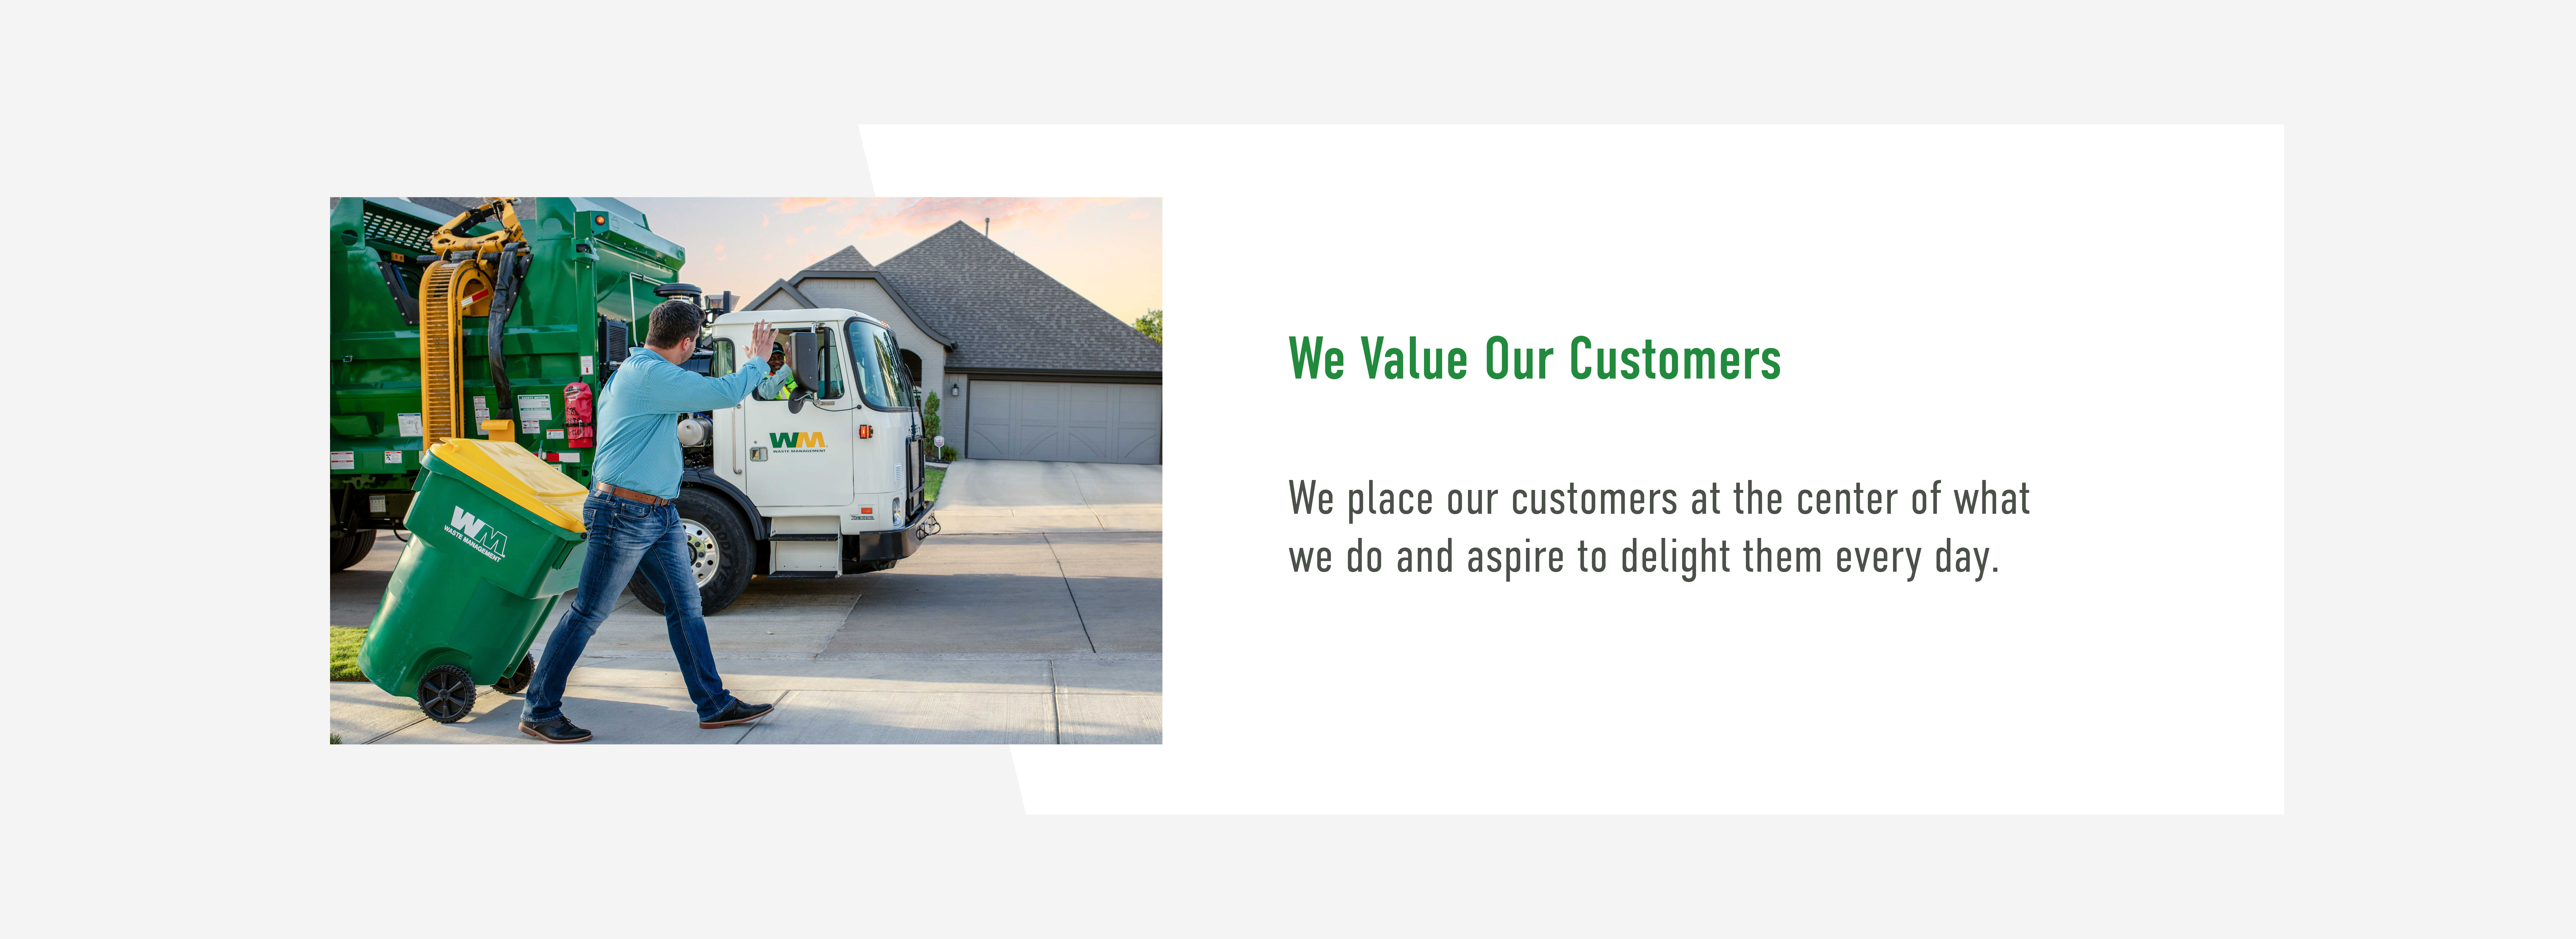 We Value our Customers. We place our customers at the center of what we do and aspire to delight them every day.